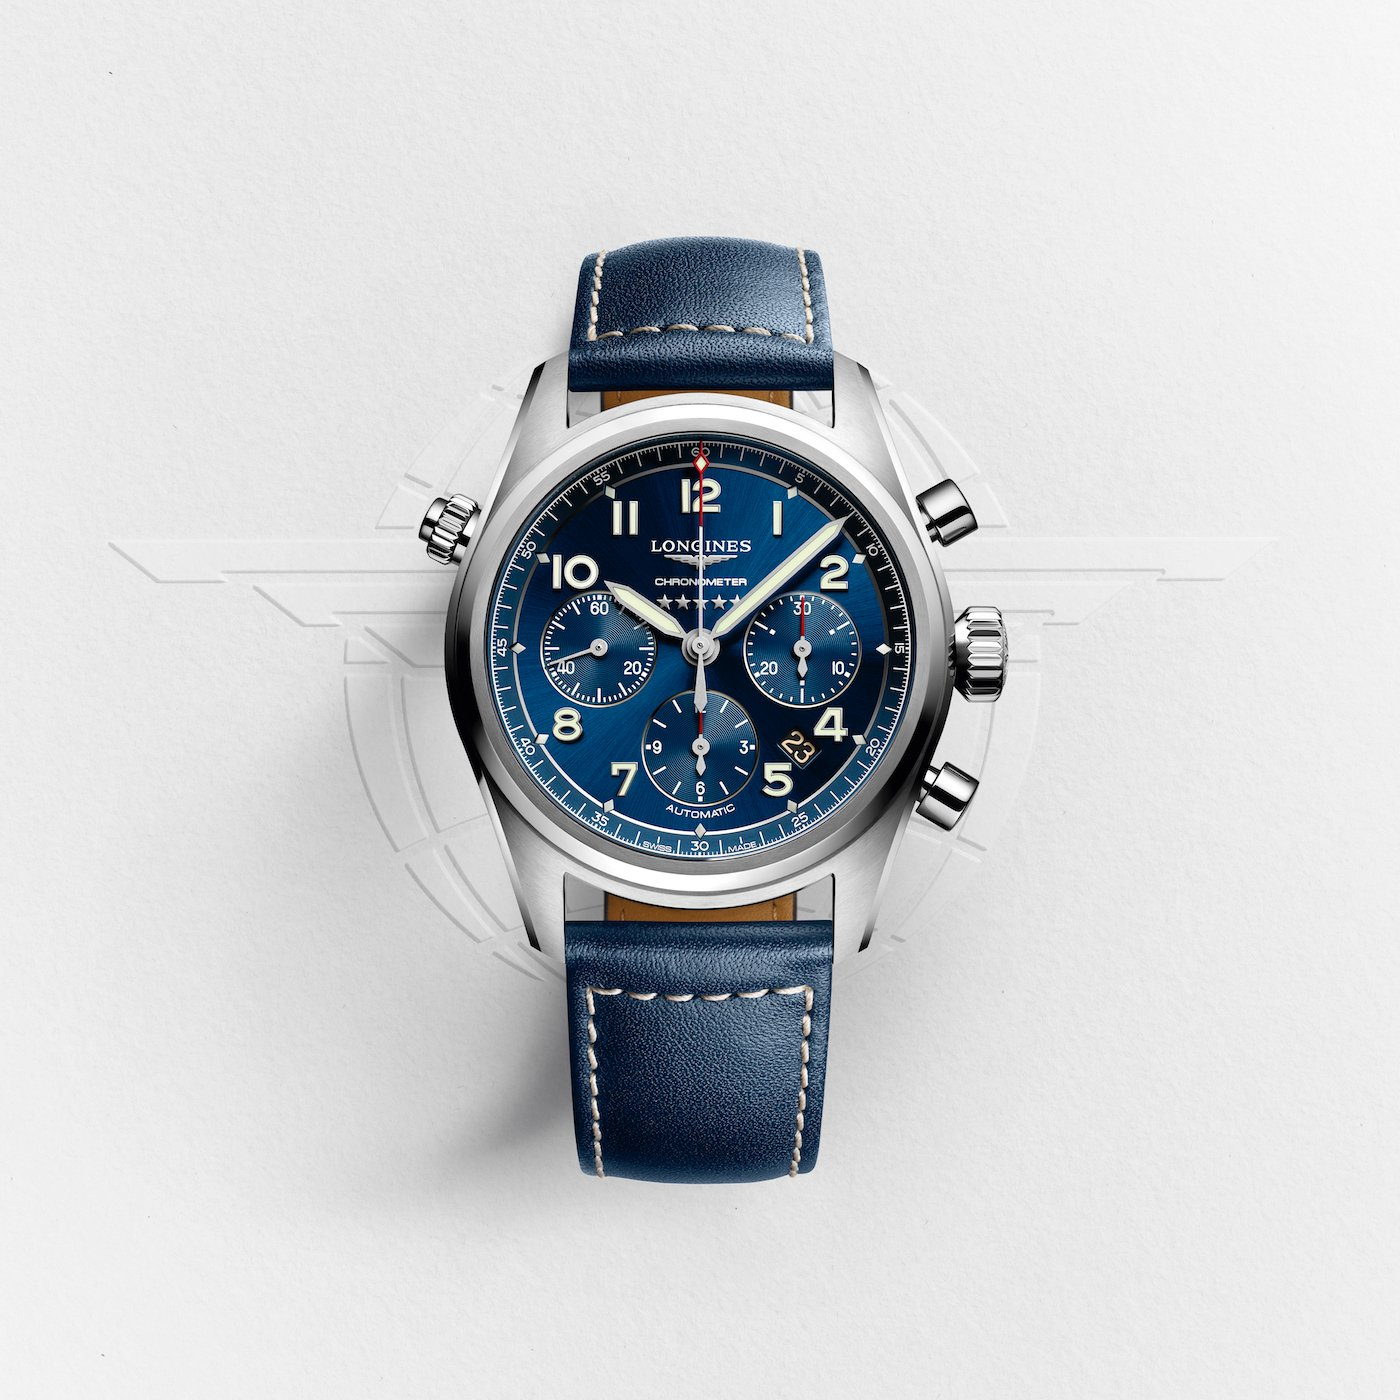 The Longines Spirit ref. L3.820.4.93.0 (42 mm) houses a COSC-certified column-wheel chronograph movement (L688.4) with silicon hairspring.